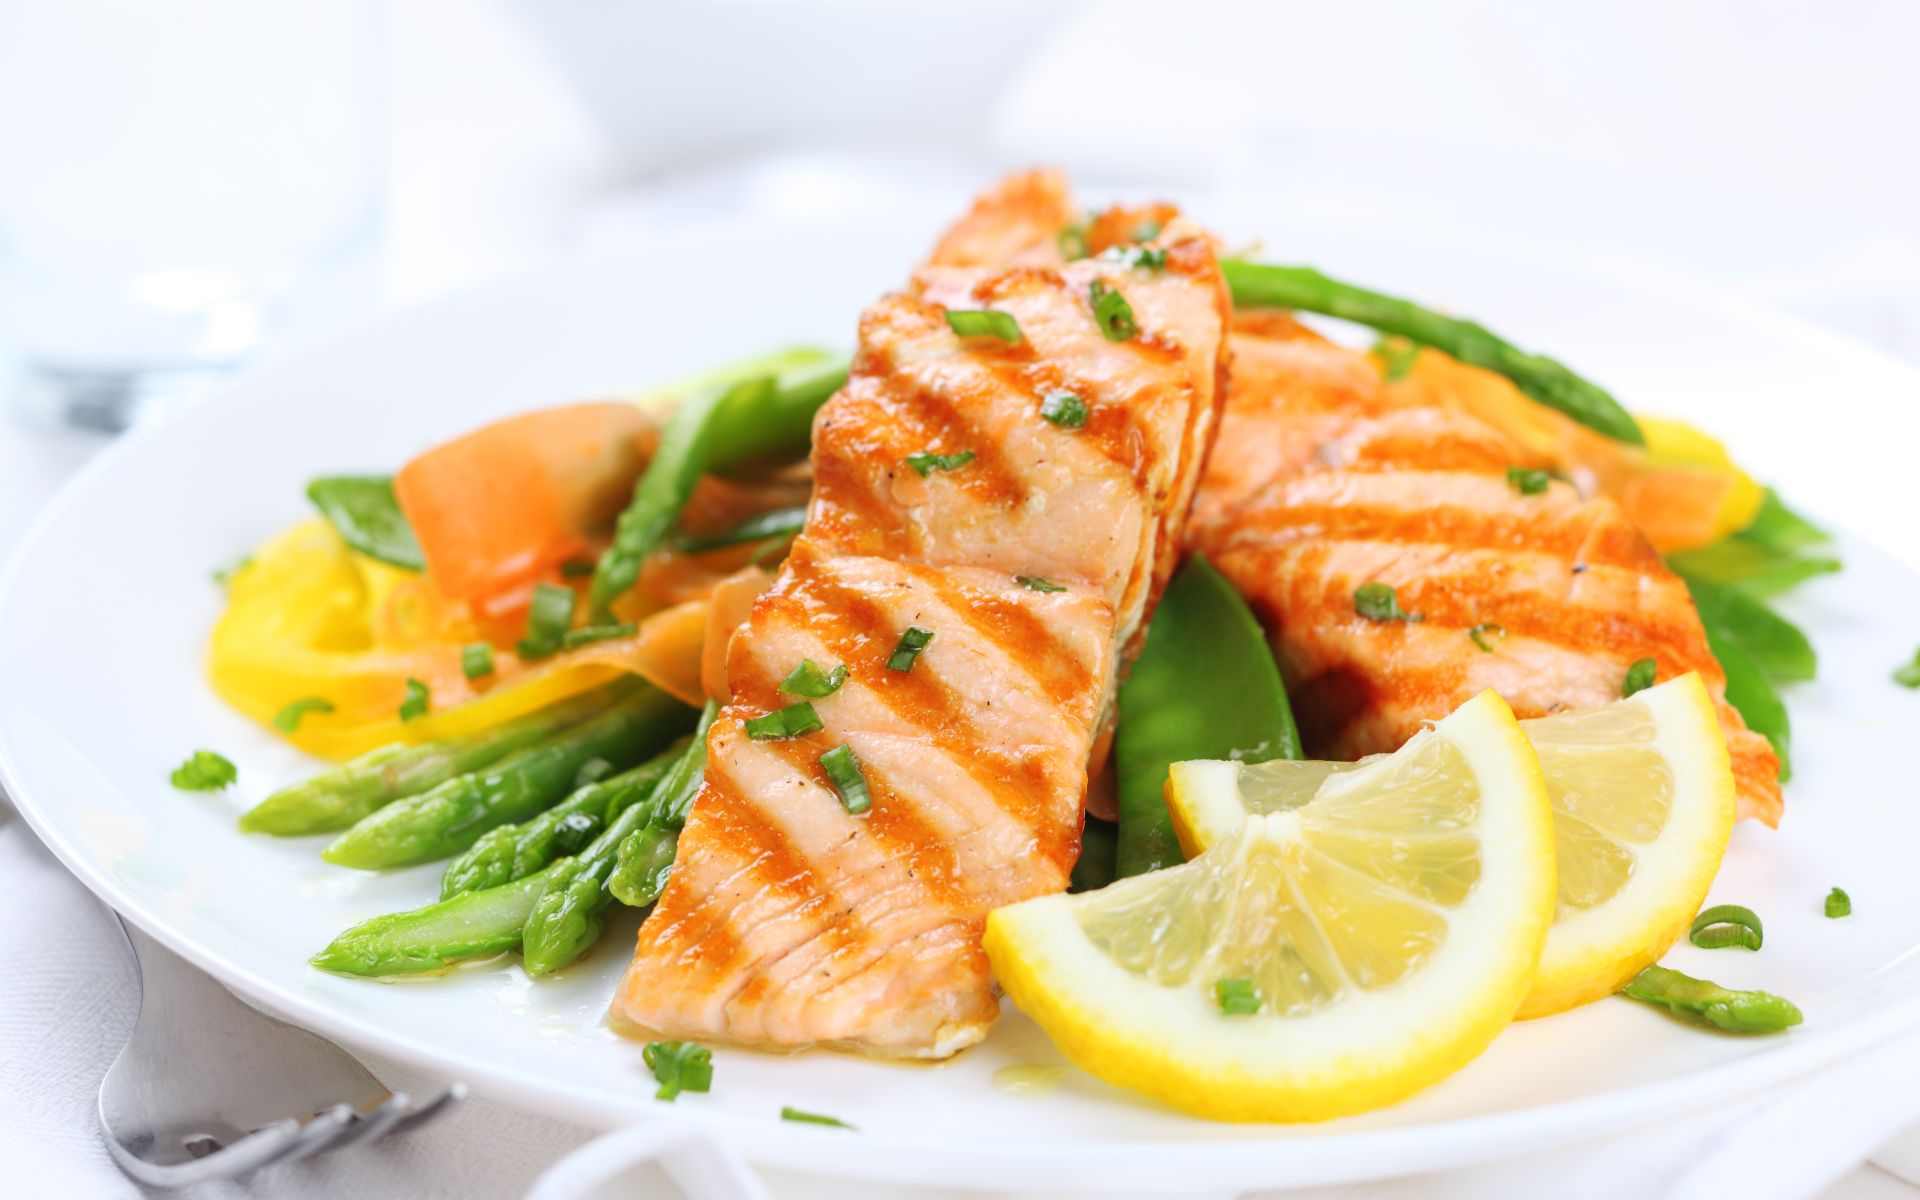 Salmon over asparagus and mixed veggies with lemon slices